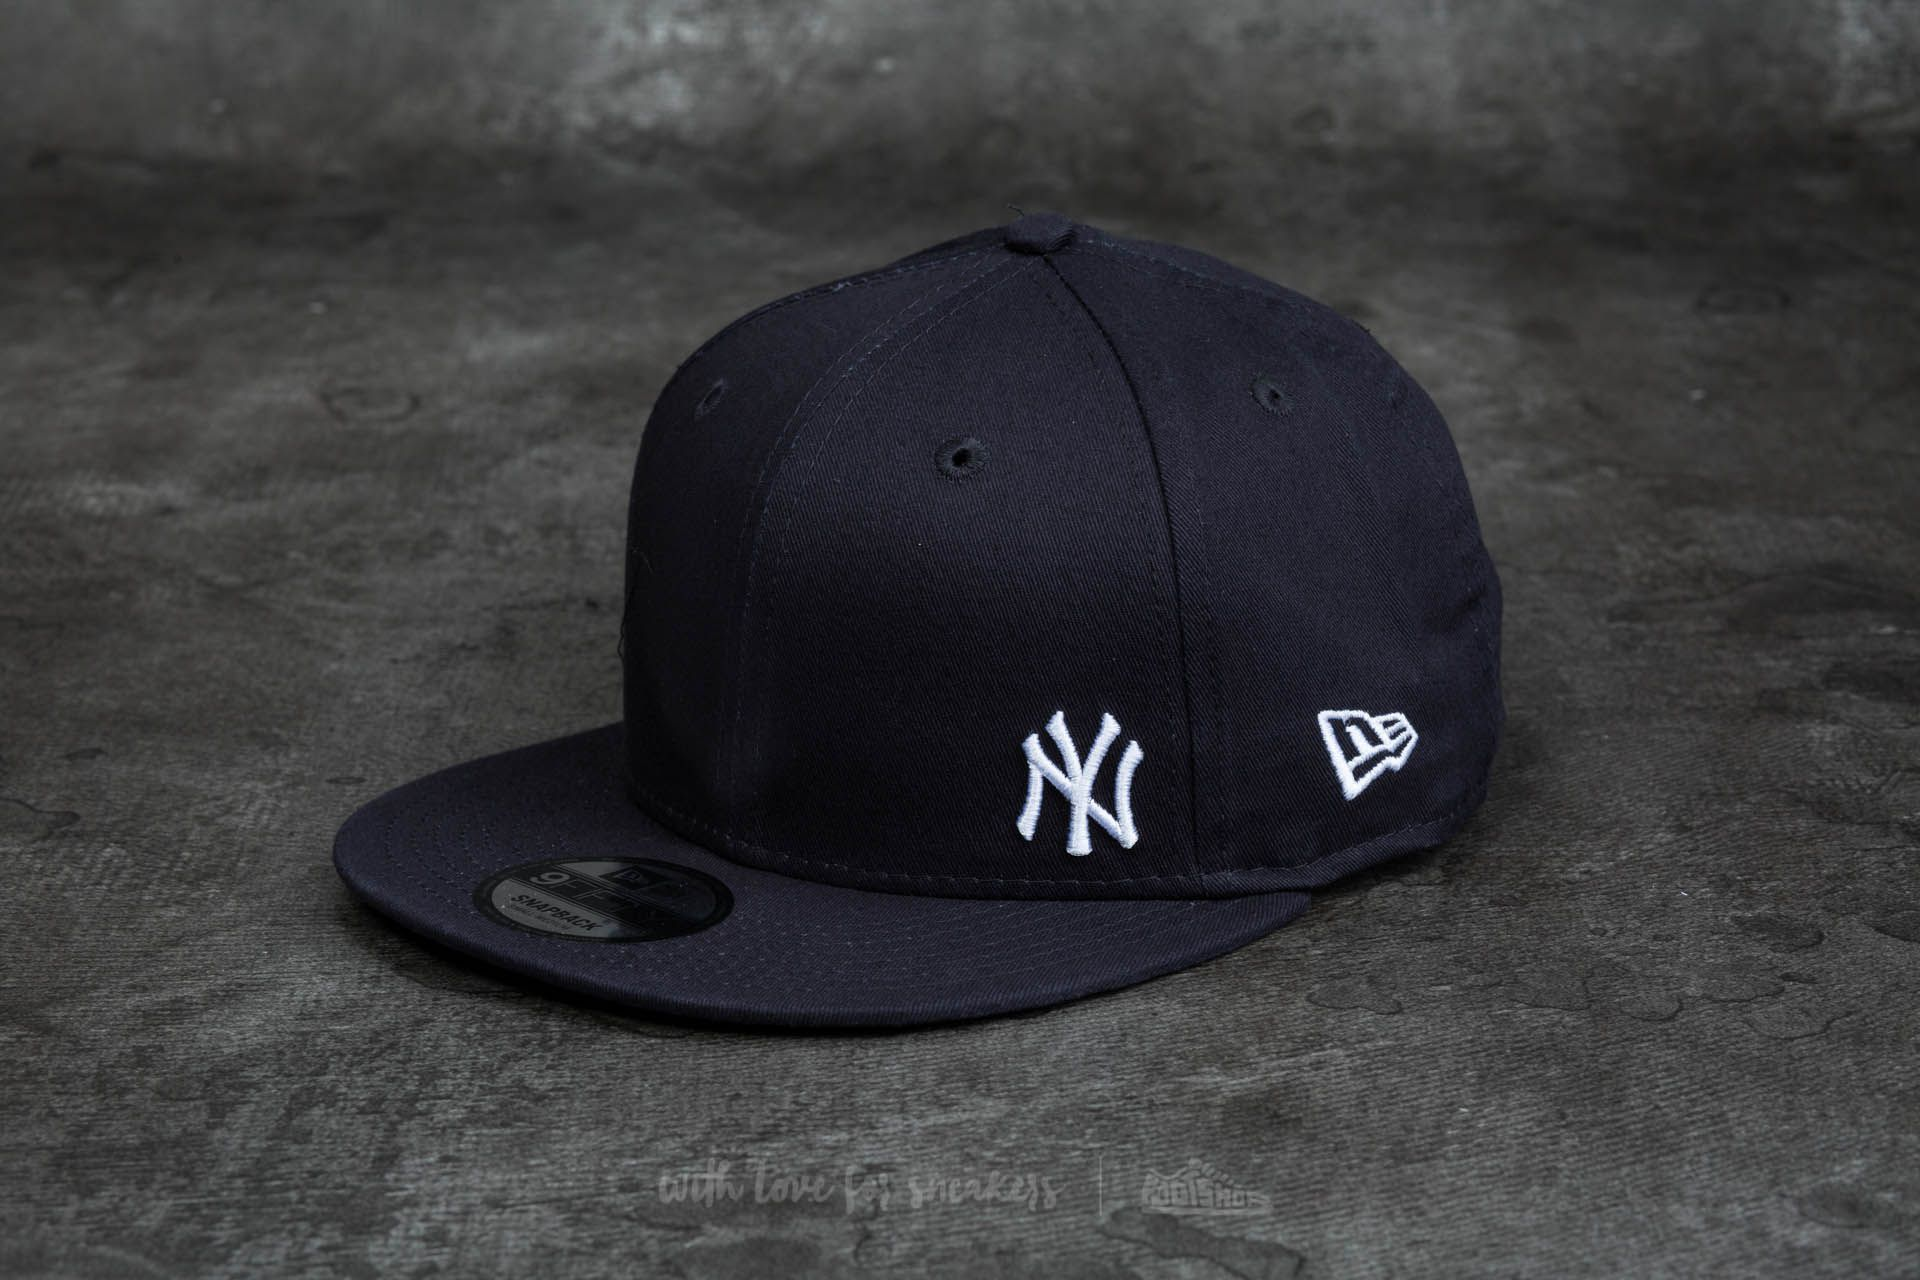 d9e9a8a8c4a55 New Era 9Fifty Major League Baseball Flawless New York Yankees Cap Navy